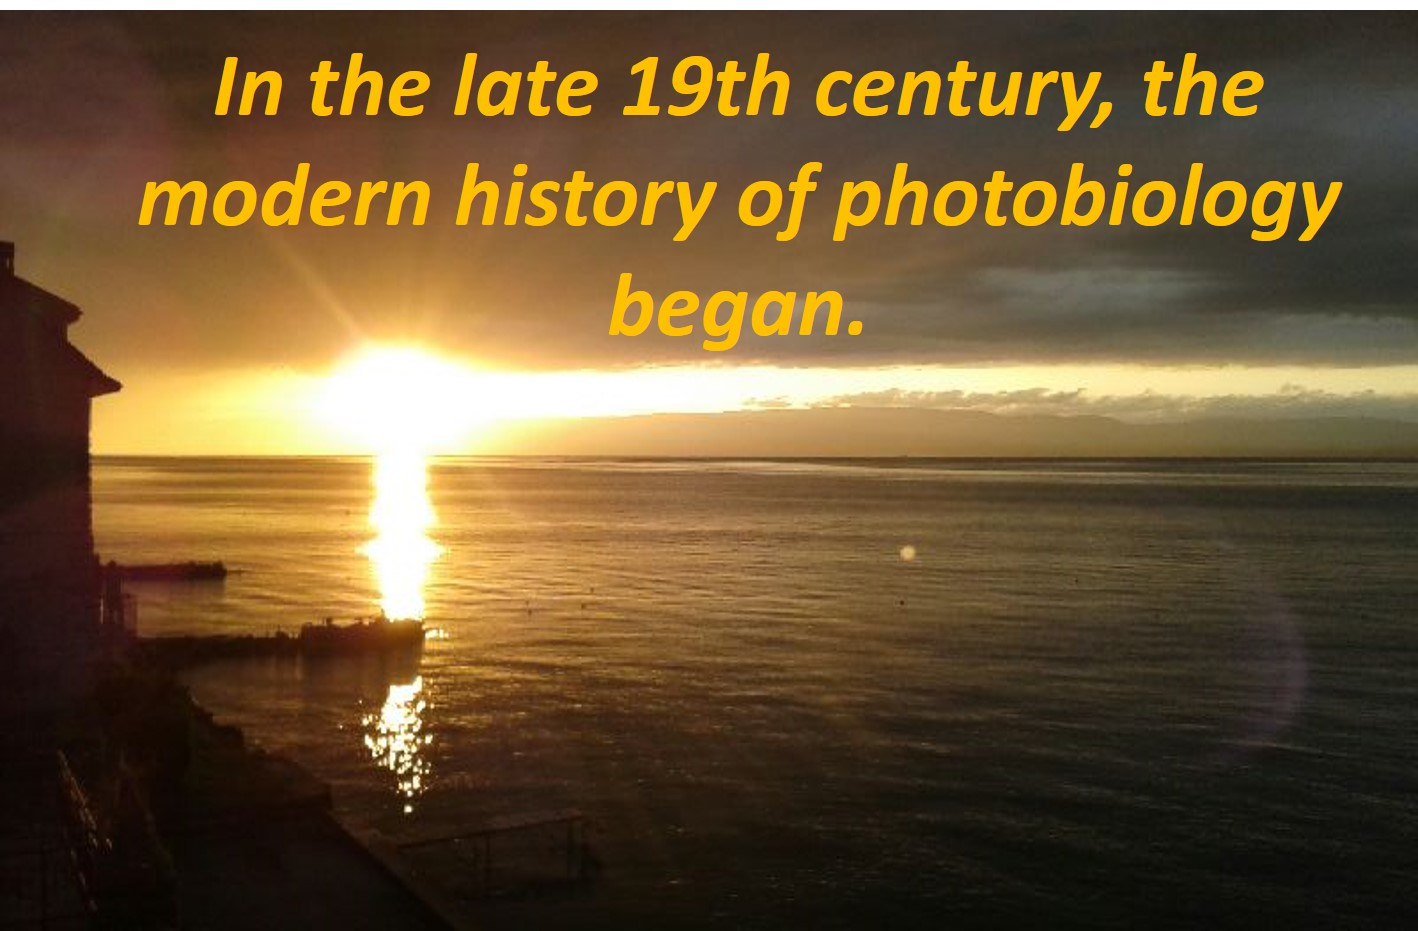 SFME 2014 - PHOTOBIOMODULATION  HISTORY - It was around this adage that, in the late 19th century, the modern history of photobiology began  - BENICHOU MD